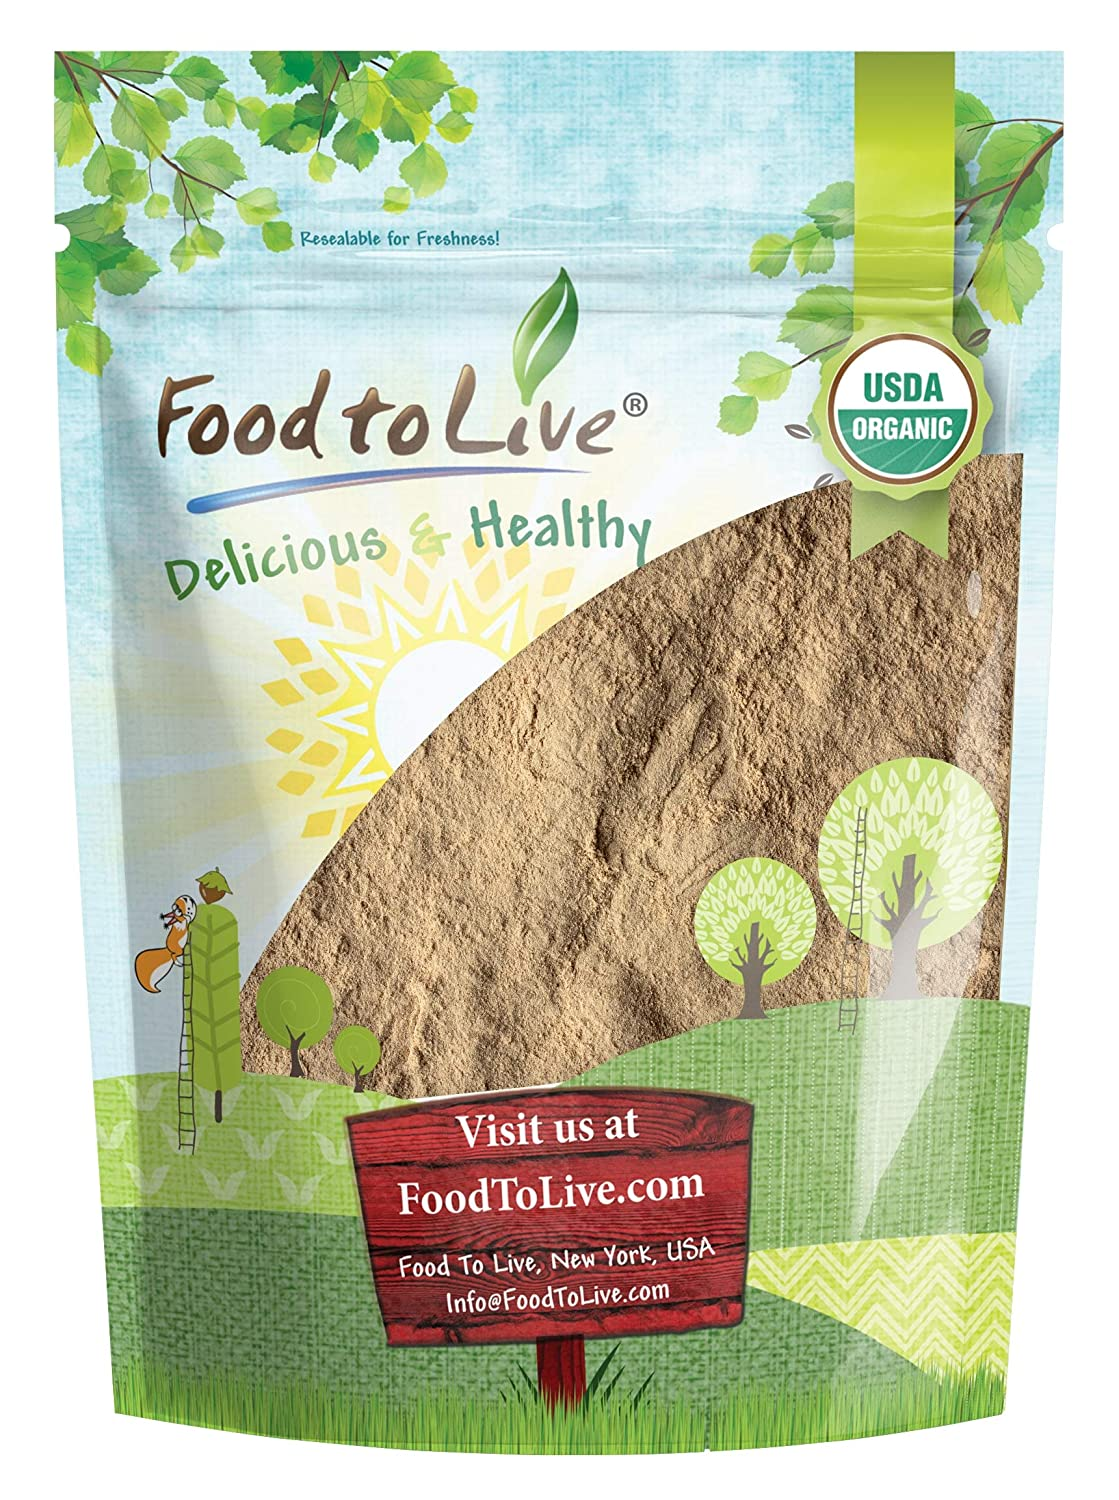 Organic Lucuma Powder, 8 Ounces — Raw, Non-GMO, 100% Pure, Non-Irradiated, No Additives, Paleo, Keto, Vegan Superfood, Bulk, Great for Juice, Drinks and Smoothies, Low Glycemic Index